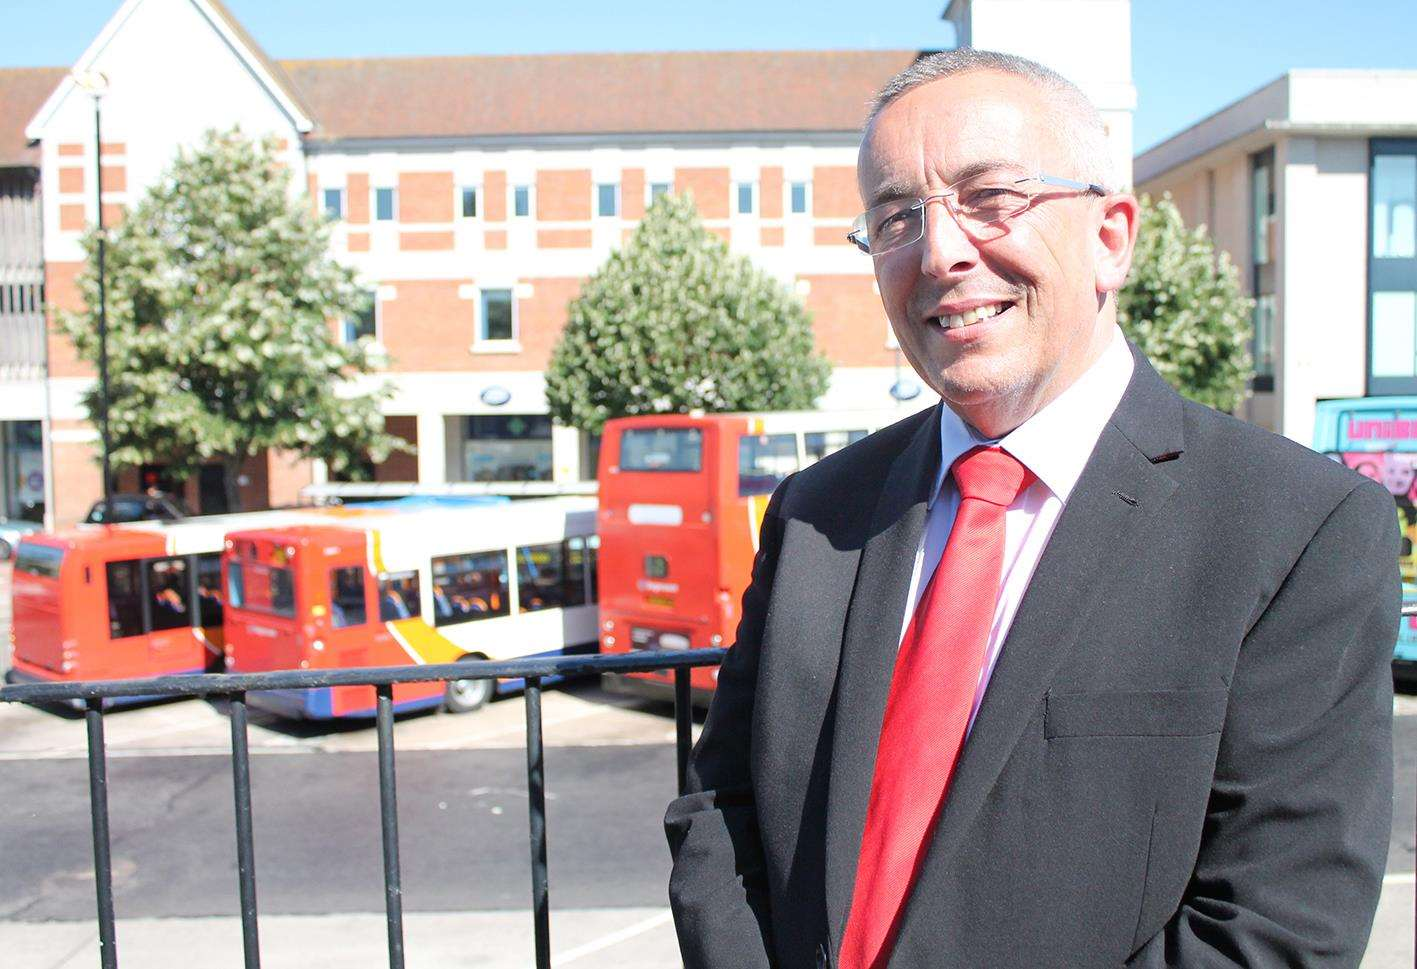 Former Stagecoach regional boss Philip Norwell, who stepped down earlier this year